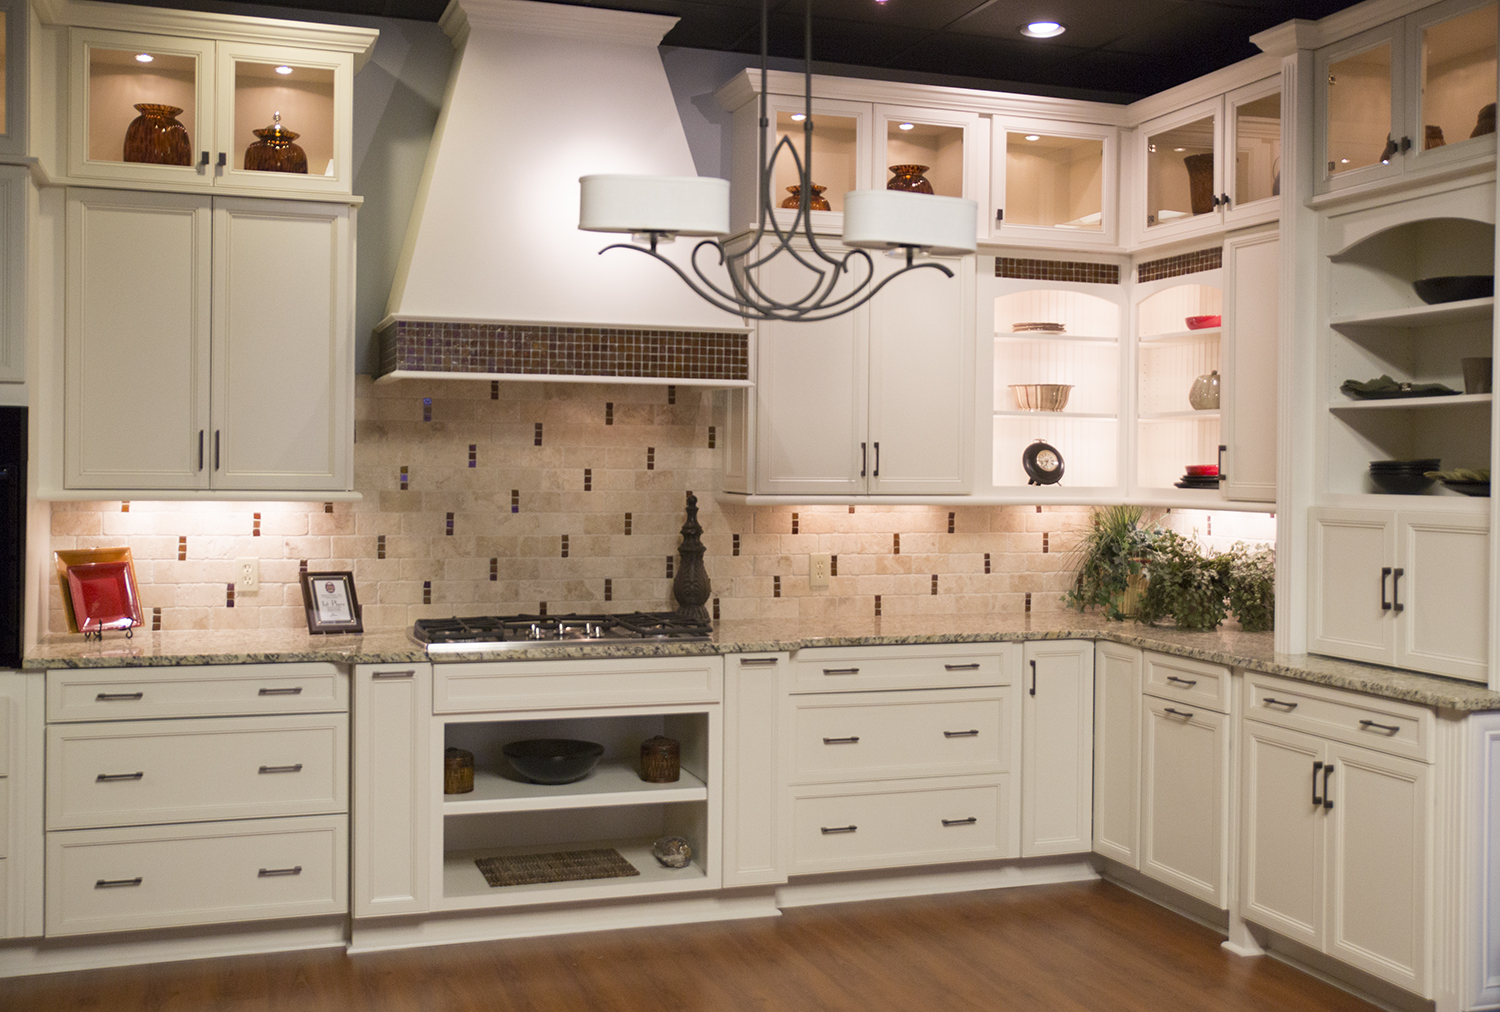 Wonderful Melbourne Florida Kitchen And Bath Cabinets And Countertops Hammond Kitchen  And Bath Brevard Florida Idea